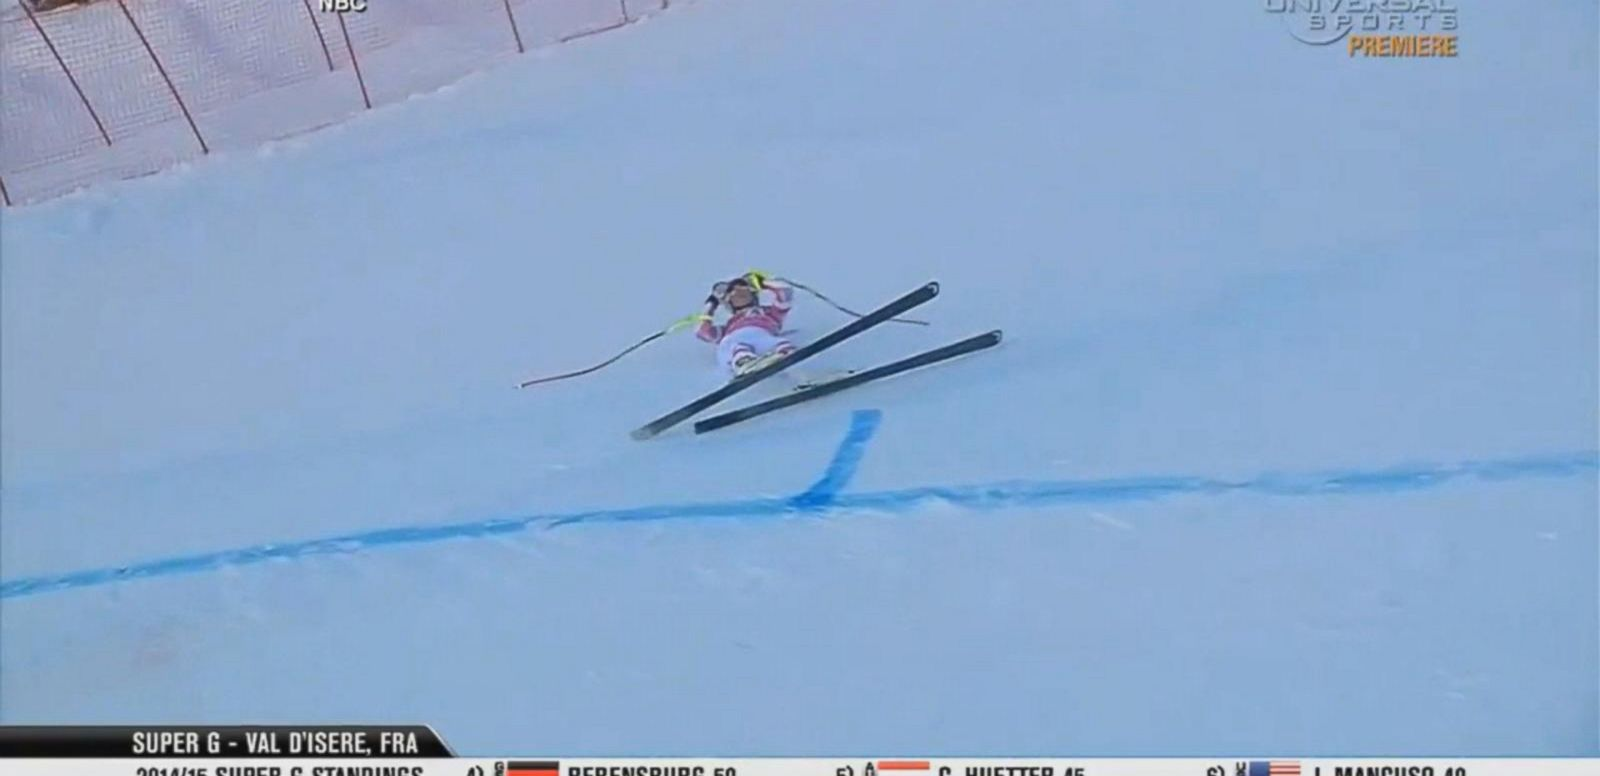 VIDEO: Lindsey Vonn Involved in Skiing Accident